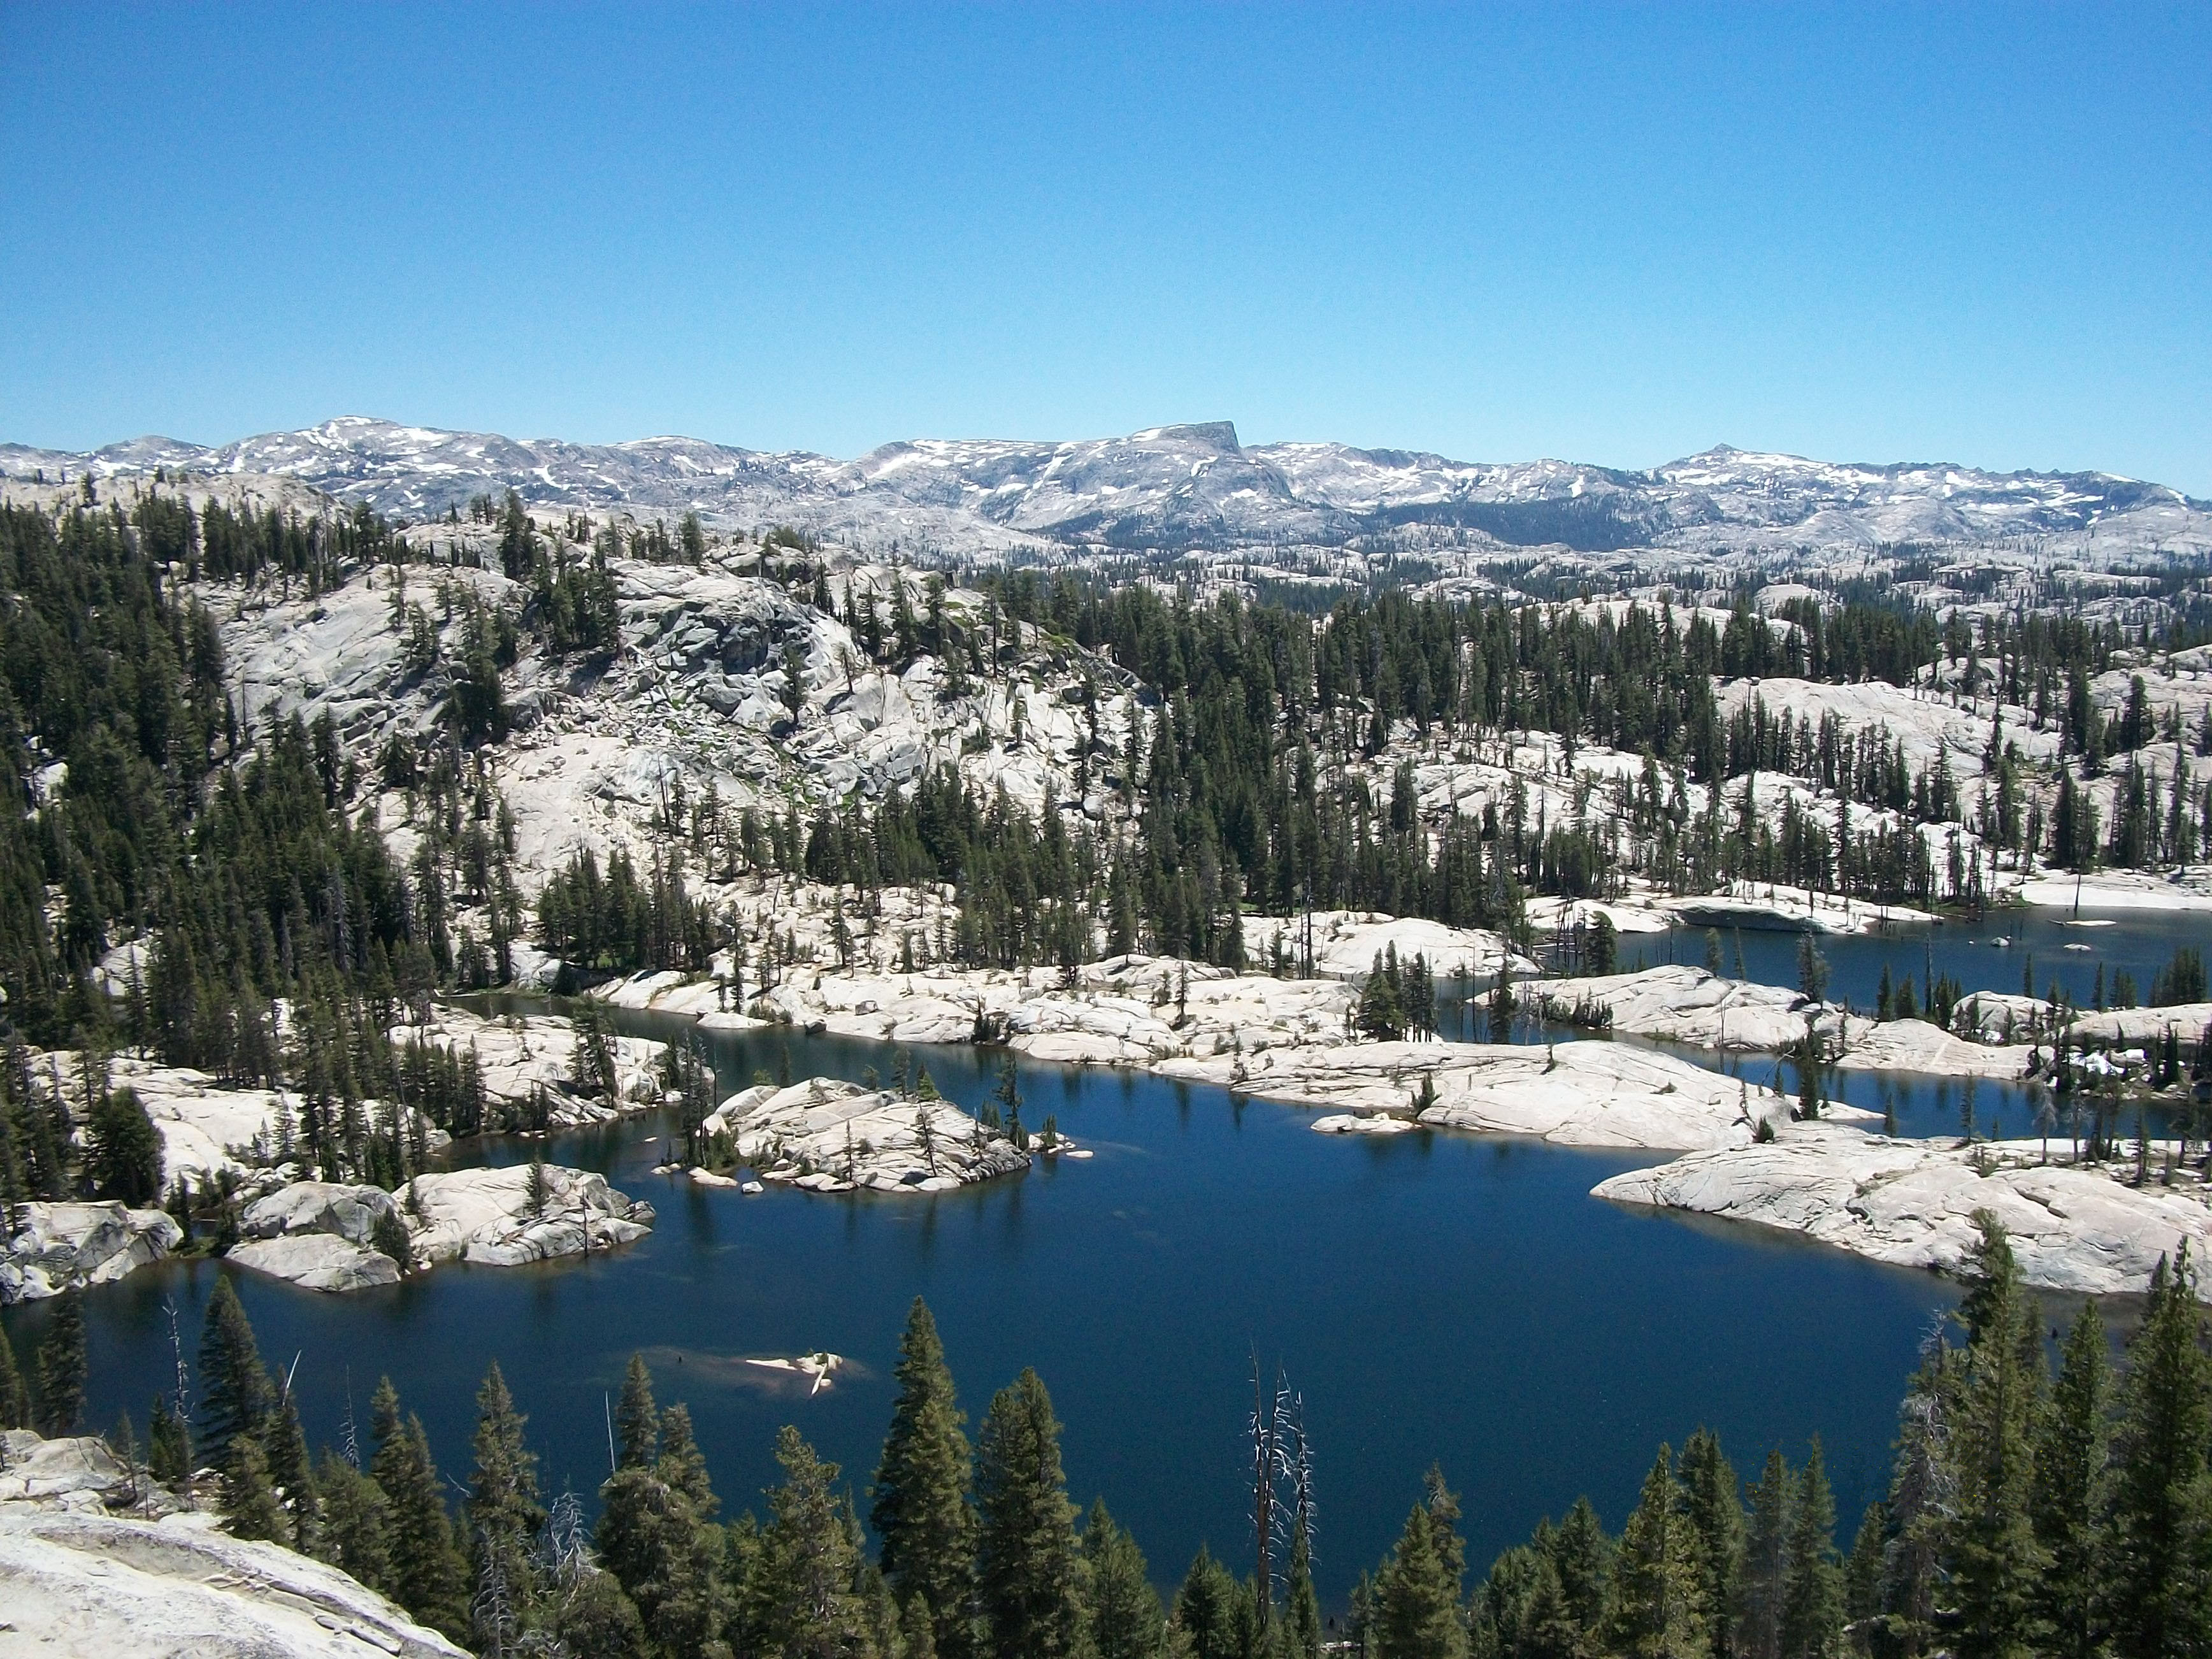 Image of Upper Buck Lakes in the Emigrant Wilderness a beautiful granite lake and trees.